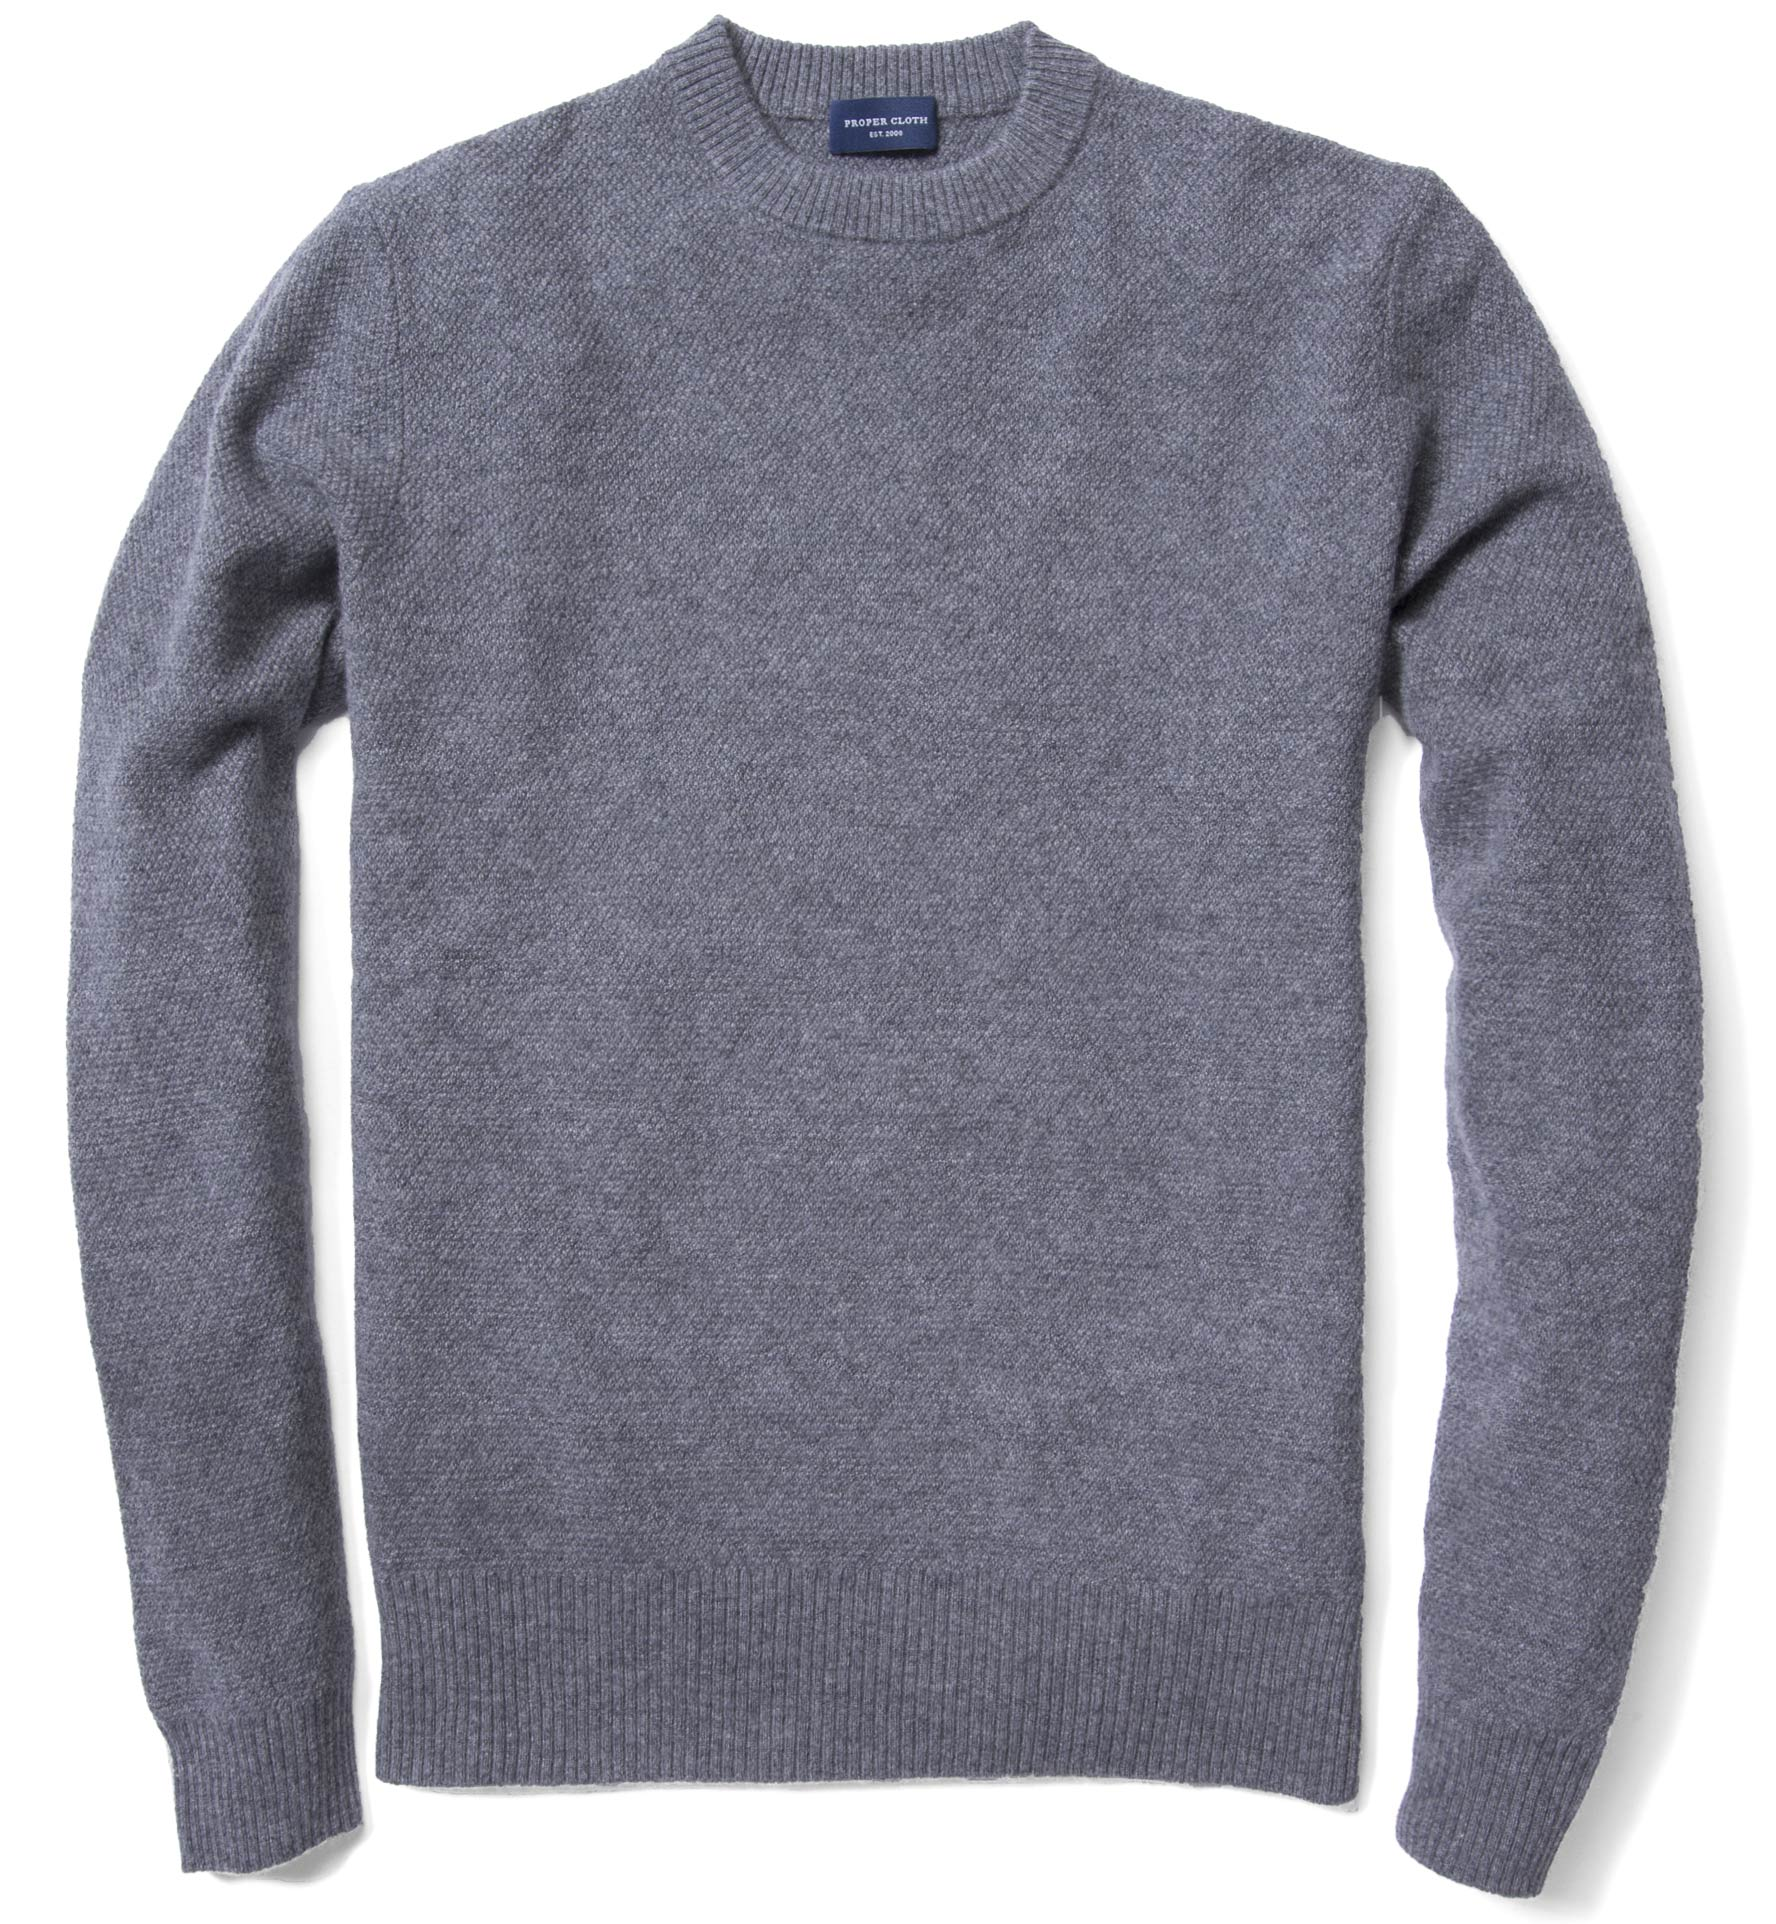 Grey Cobble Stitch Cashmere Sweater by Proper Cloth